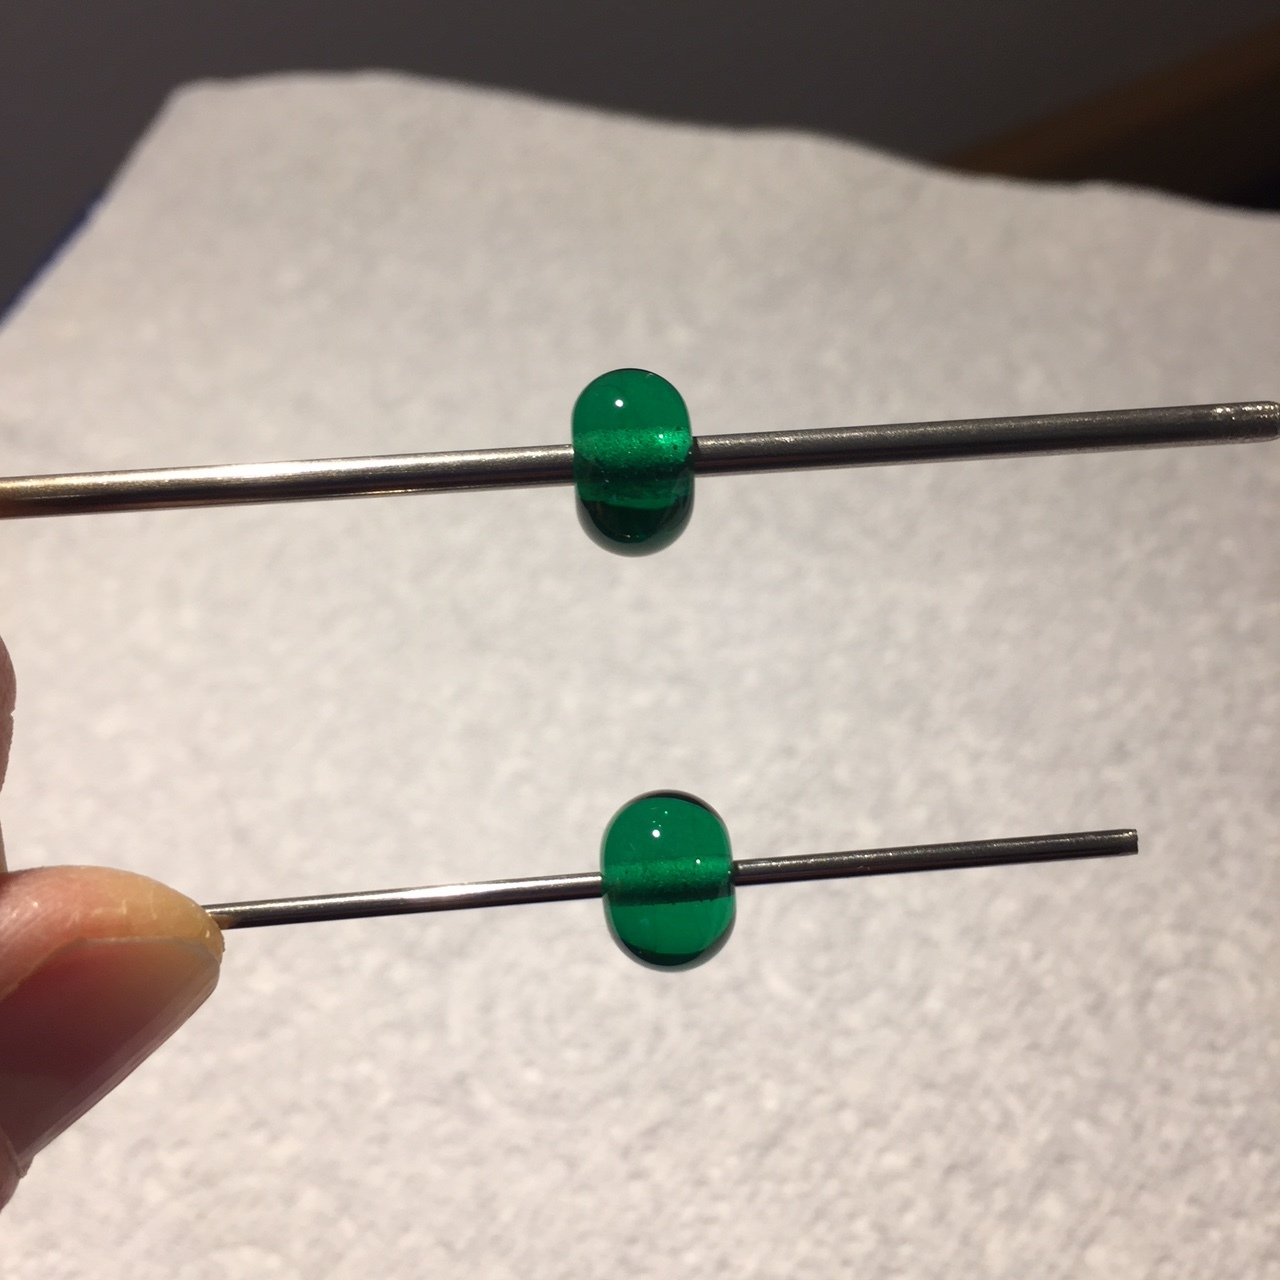 In this image the bead holes have been filed clean of bead release - this already makes them more attractive. Notice the difference in the shapes of the beads. Top - 2.4mm; bottom - 1.6mm.